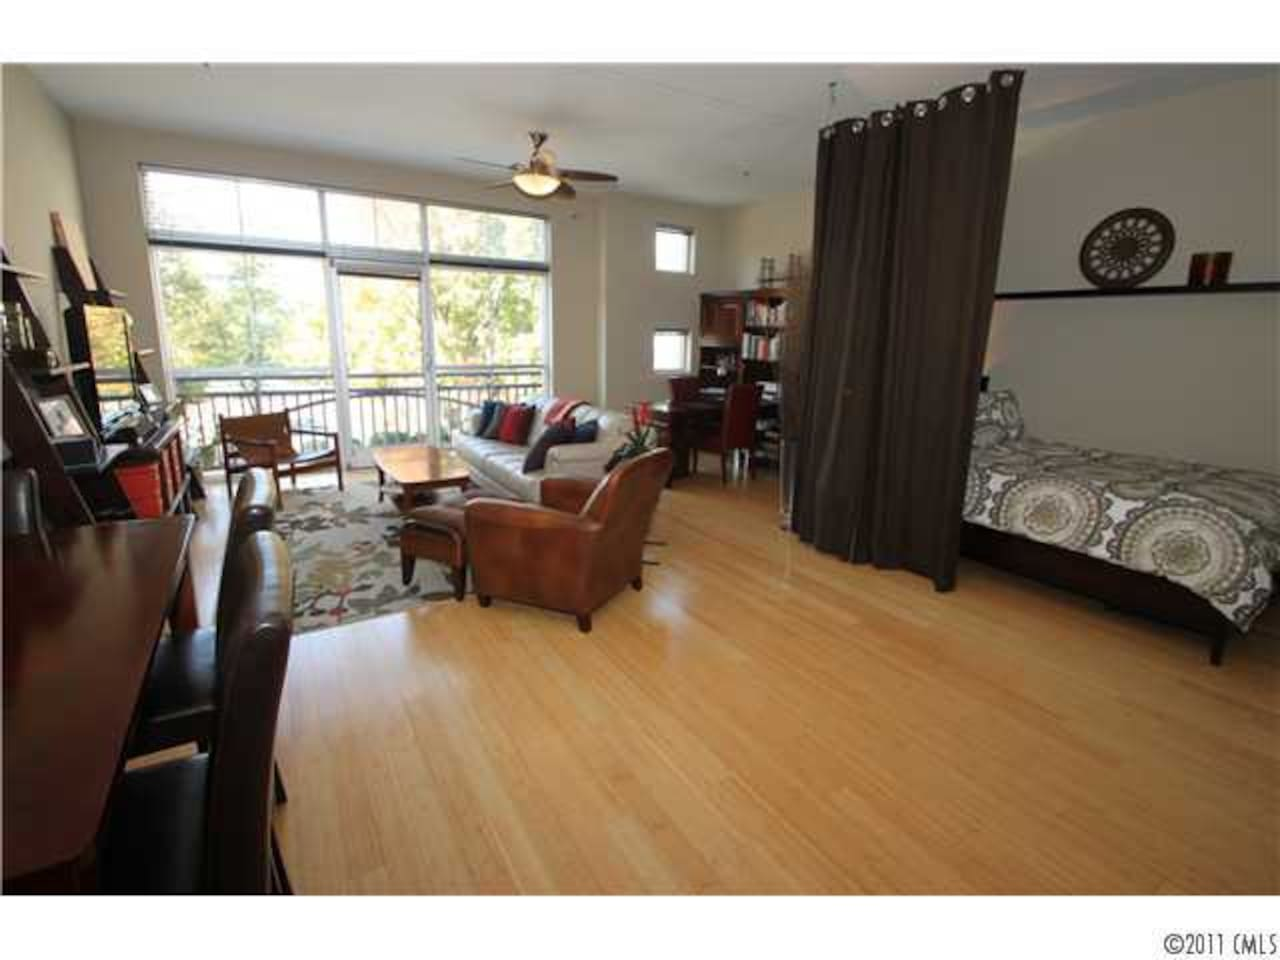 Spacious, airy, light-filled and comfortable. Great view of NoDa right outside your window.